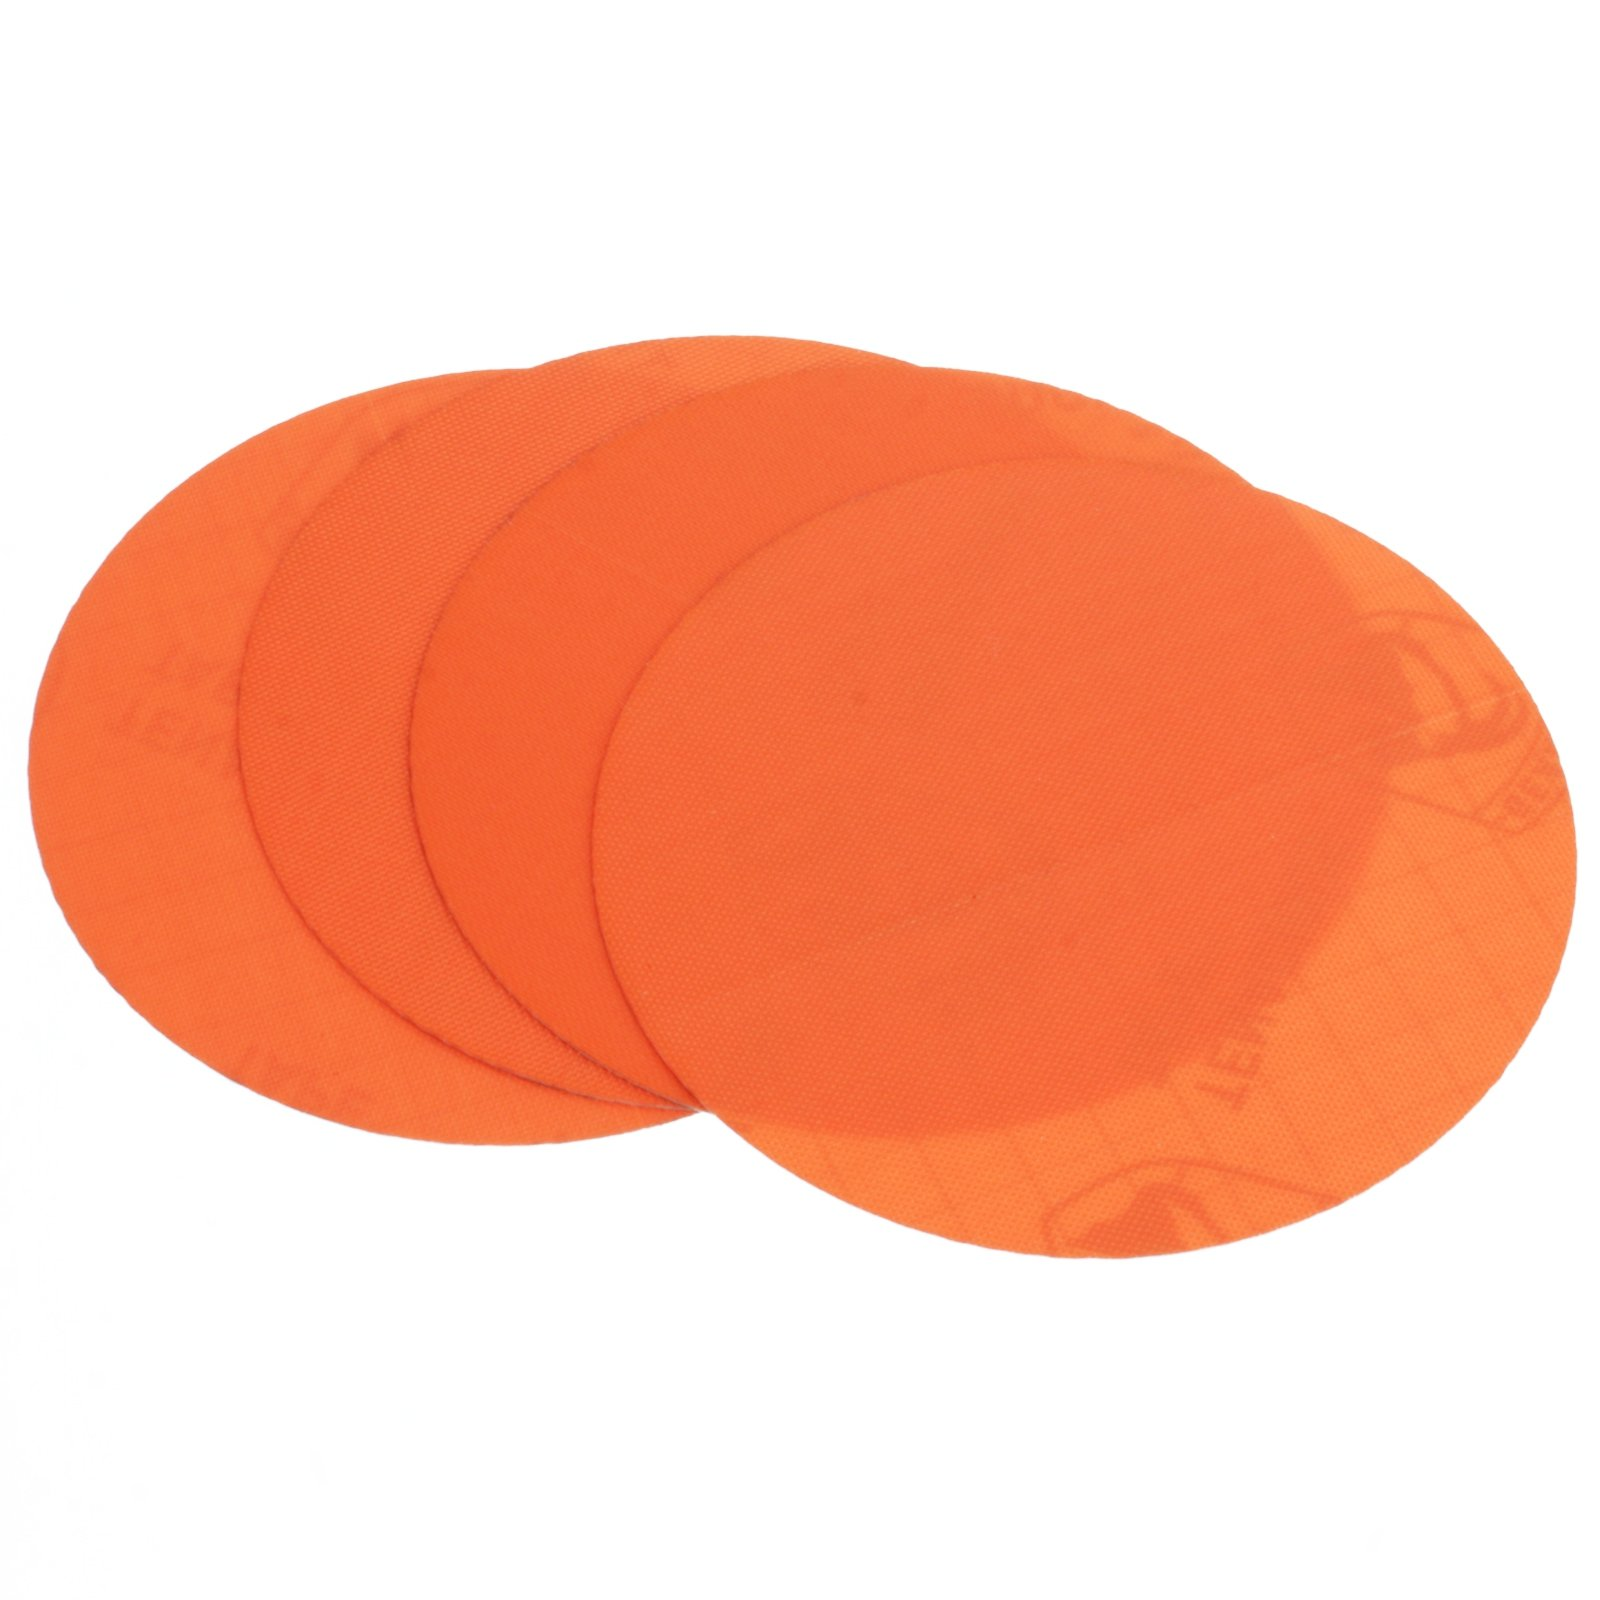 Gear Aid Tenacious Tape Repair Patches for Outdoor Sport Camping - 4pc Orange